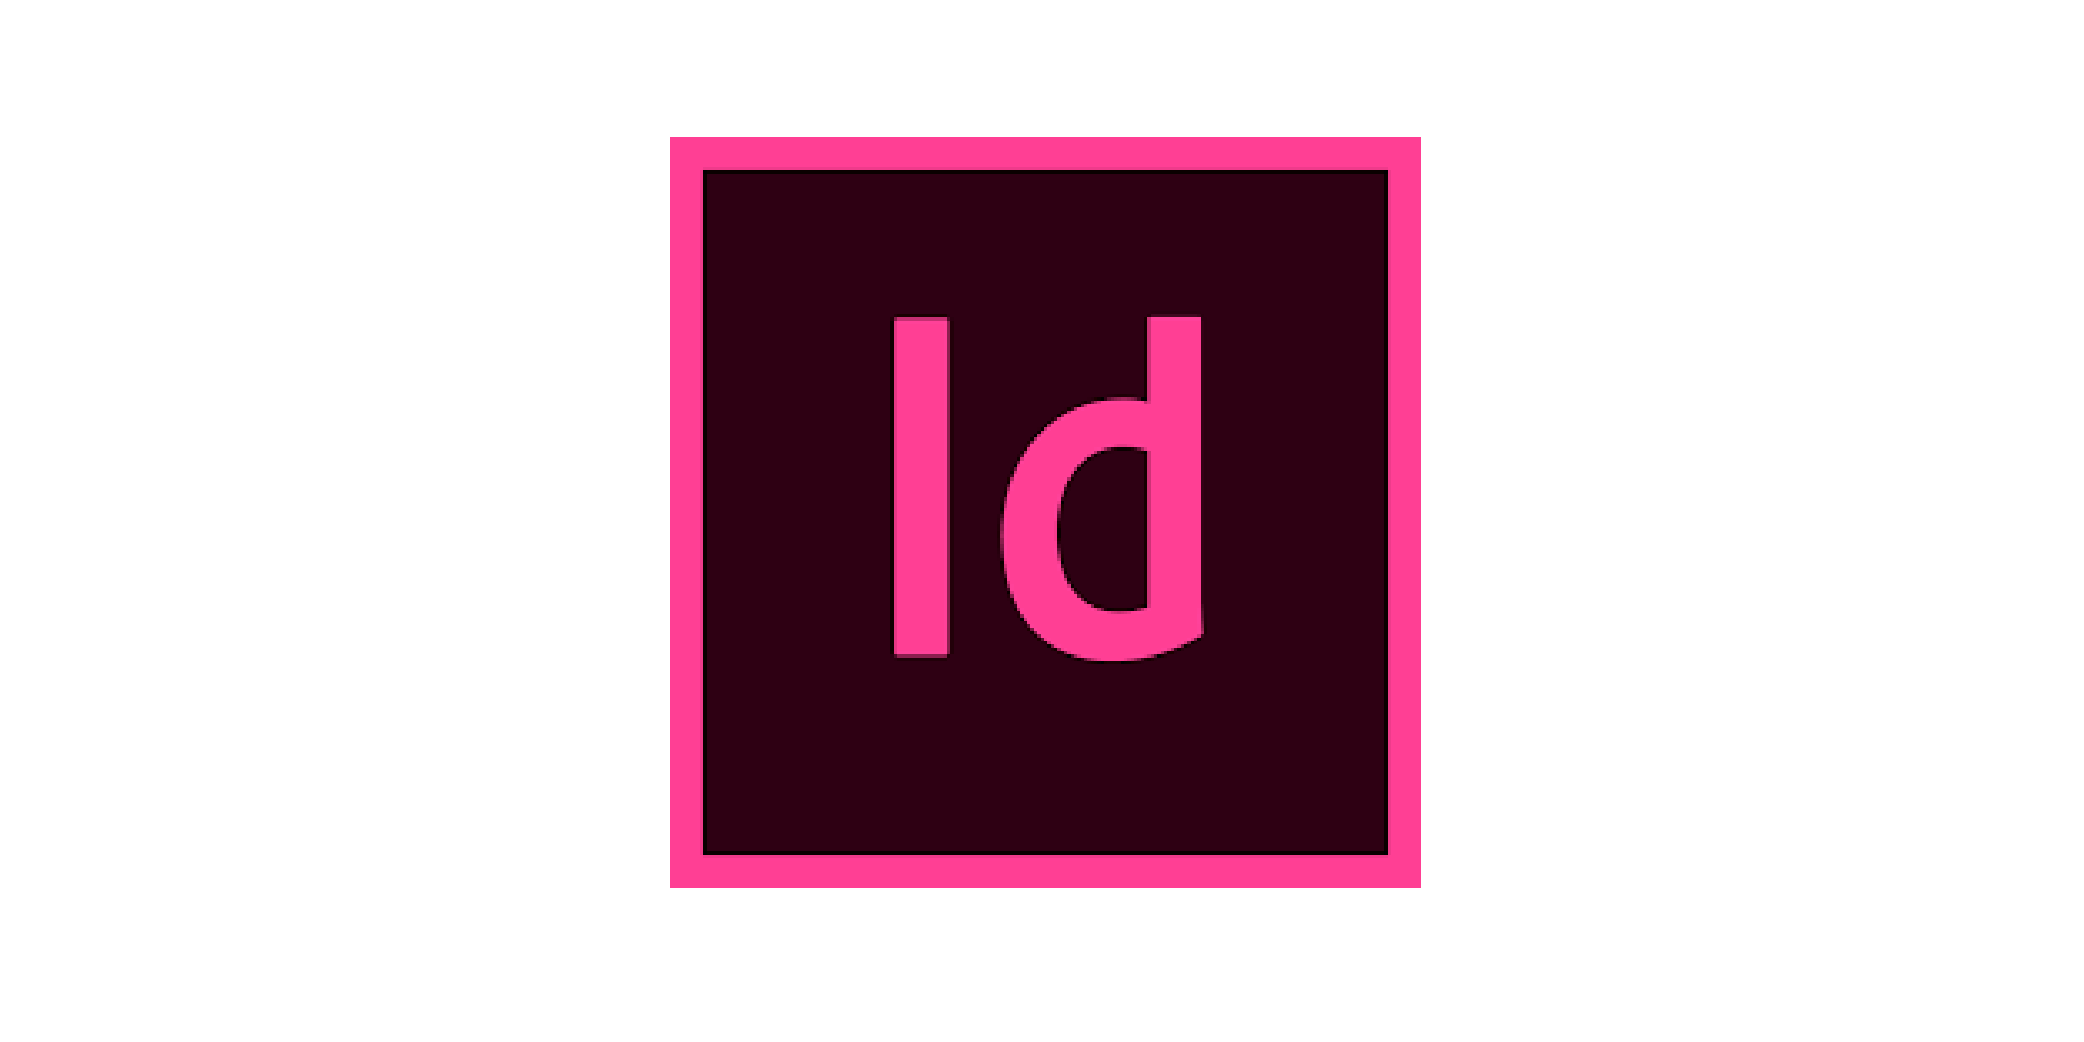 Adobe InDesign CC - What I use to design booklets and PDFs